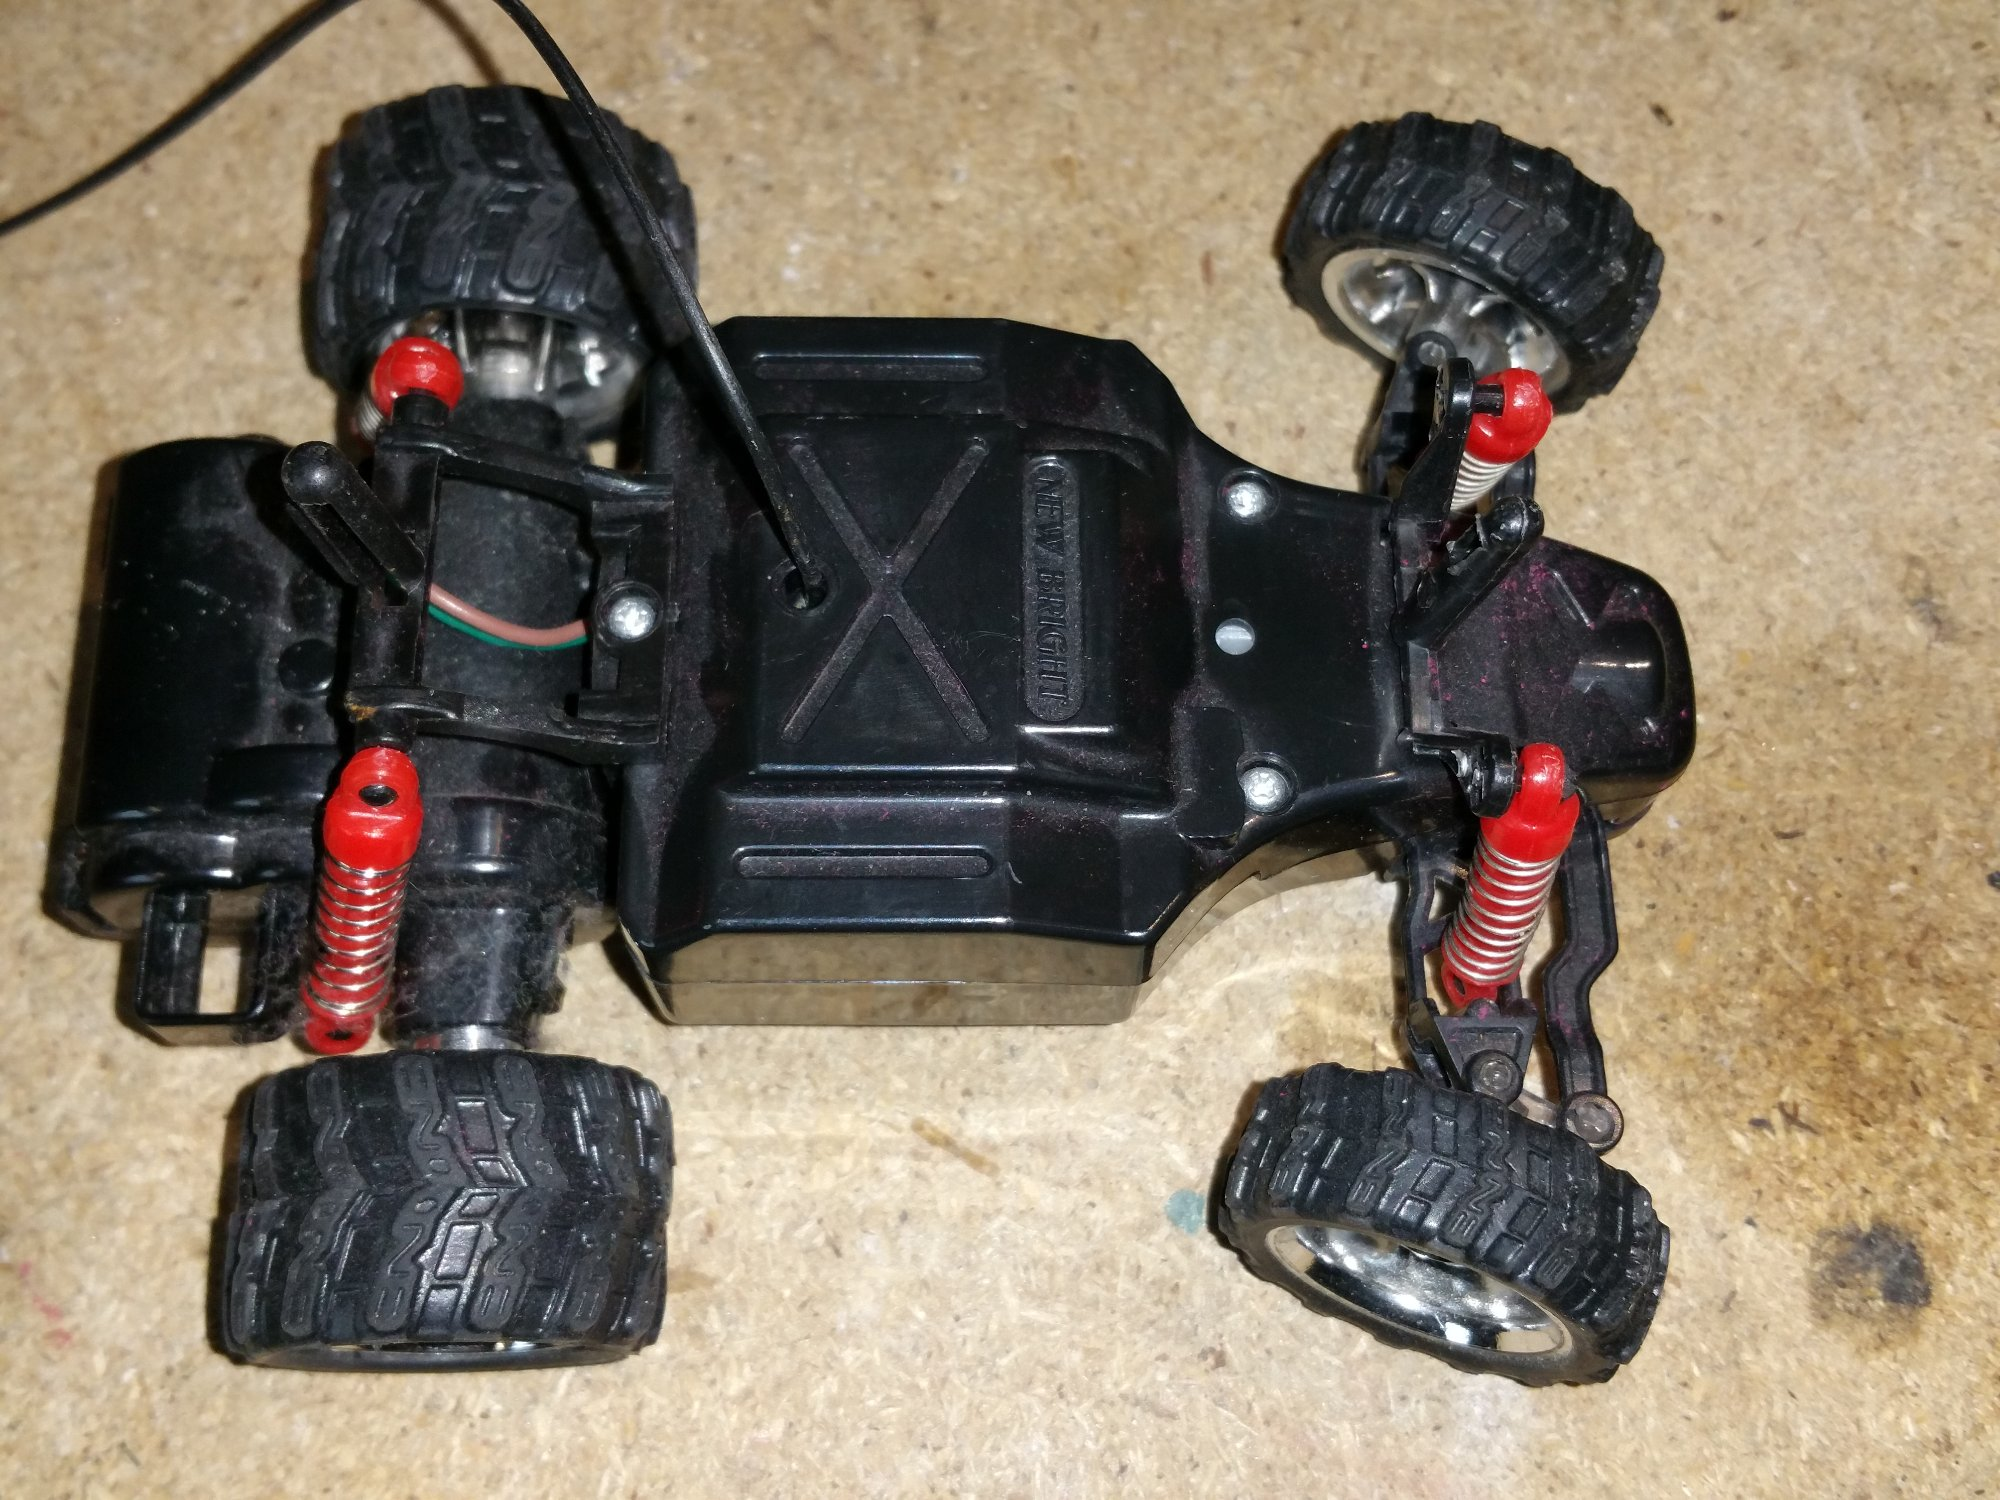 Remote Controlled Car toy